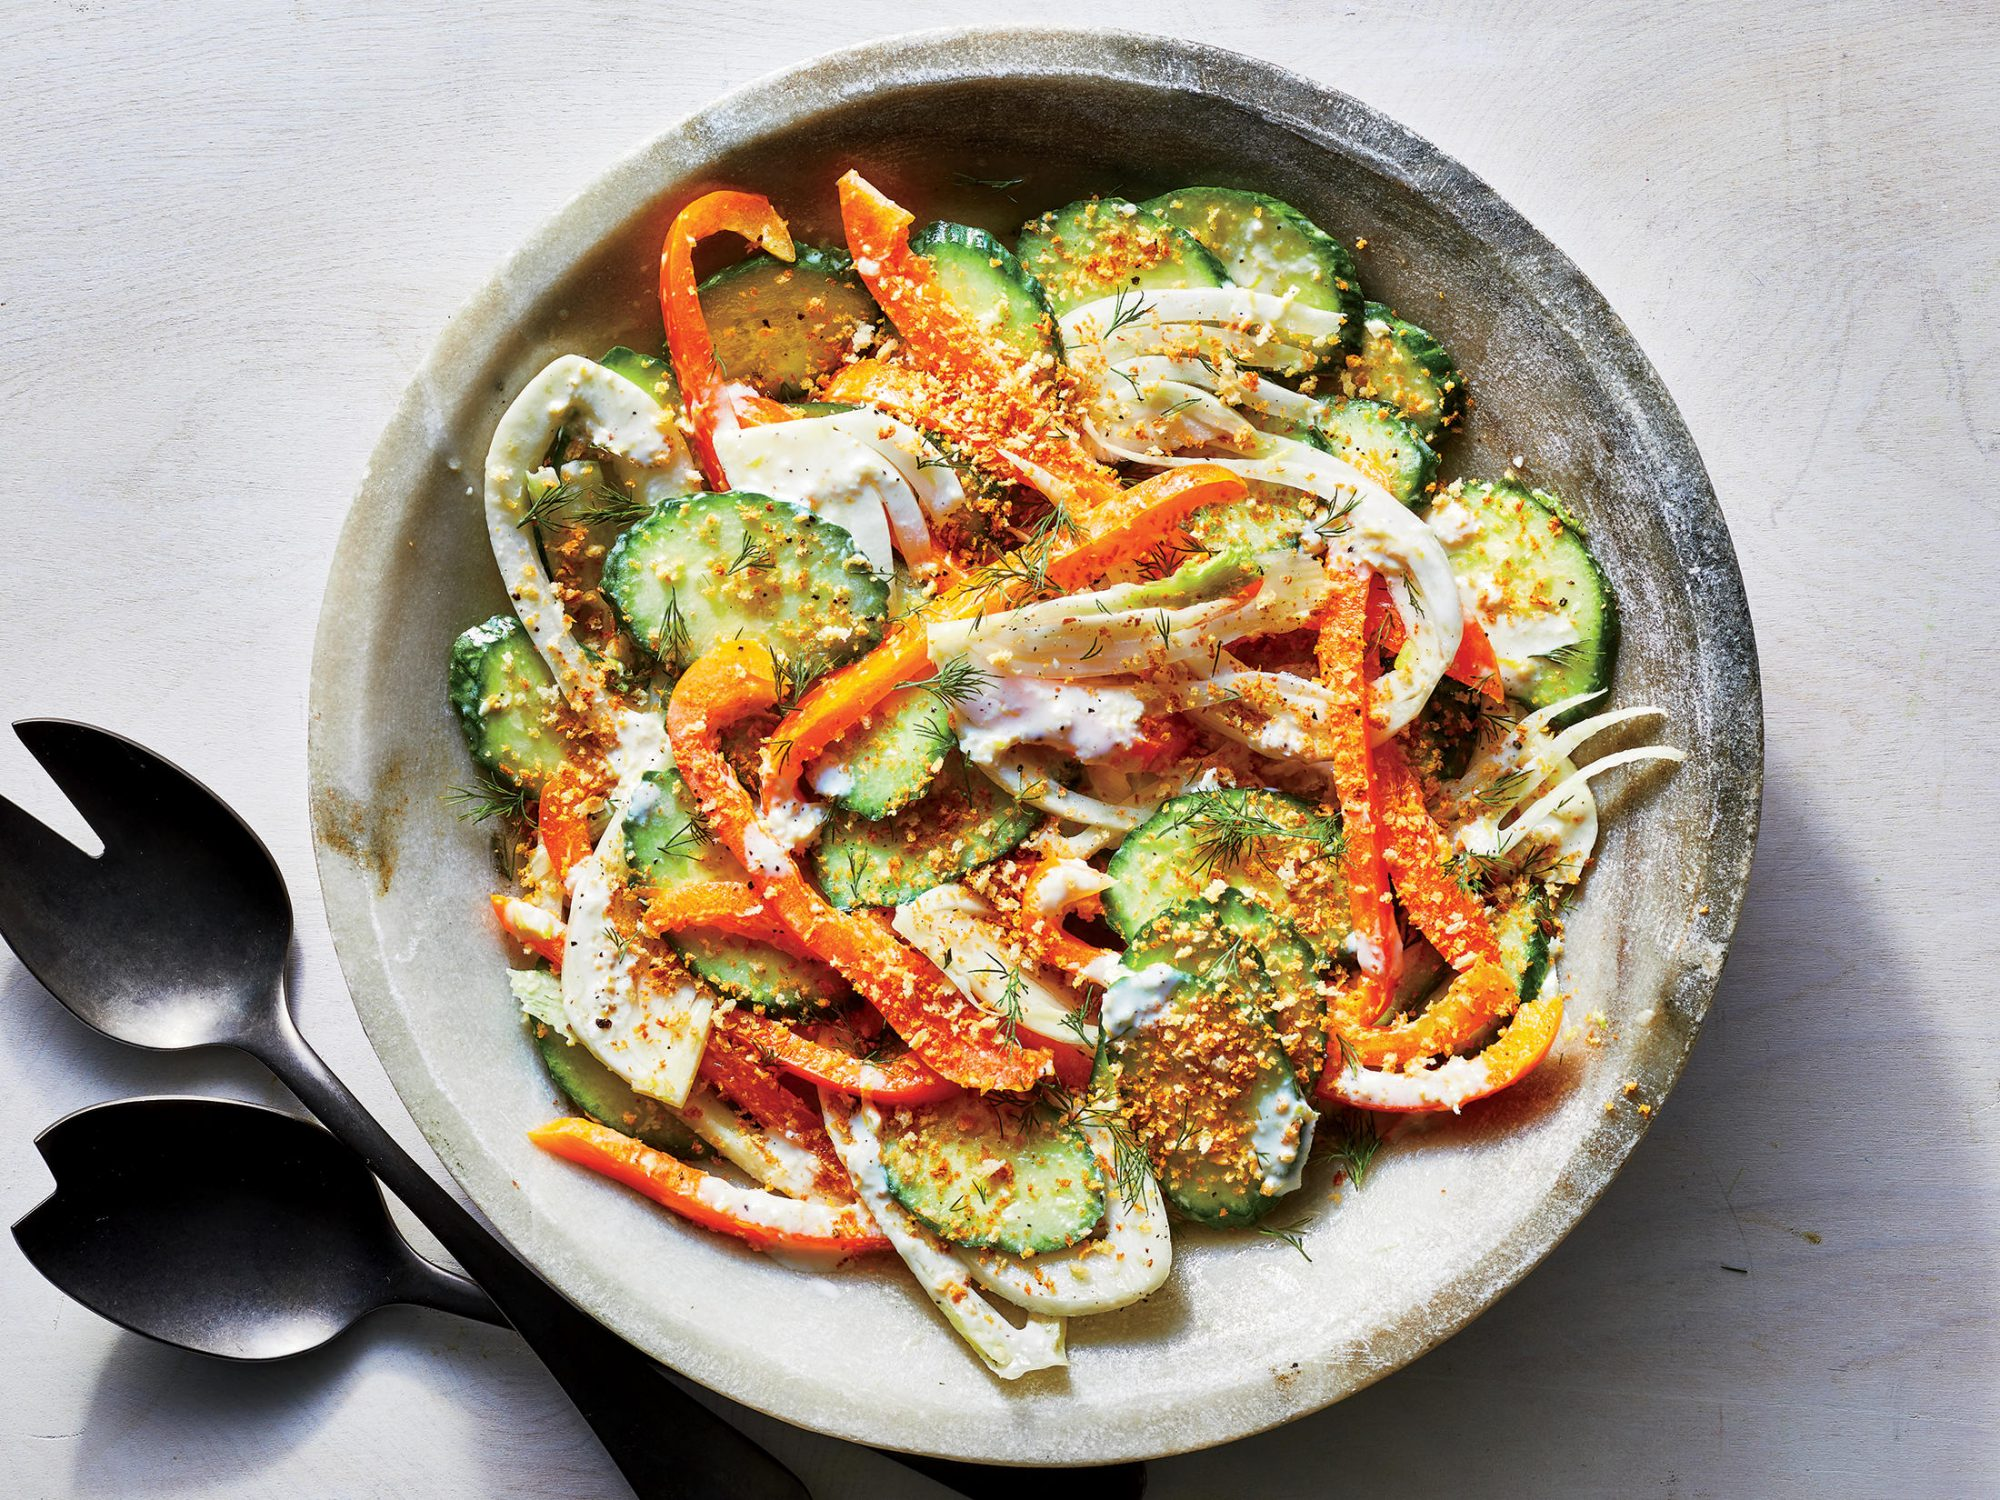 Cucumber-Fennel Salad